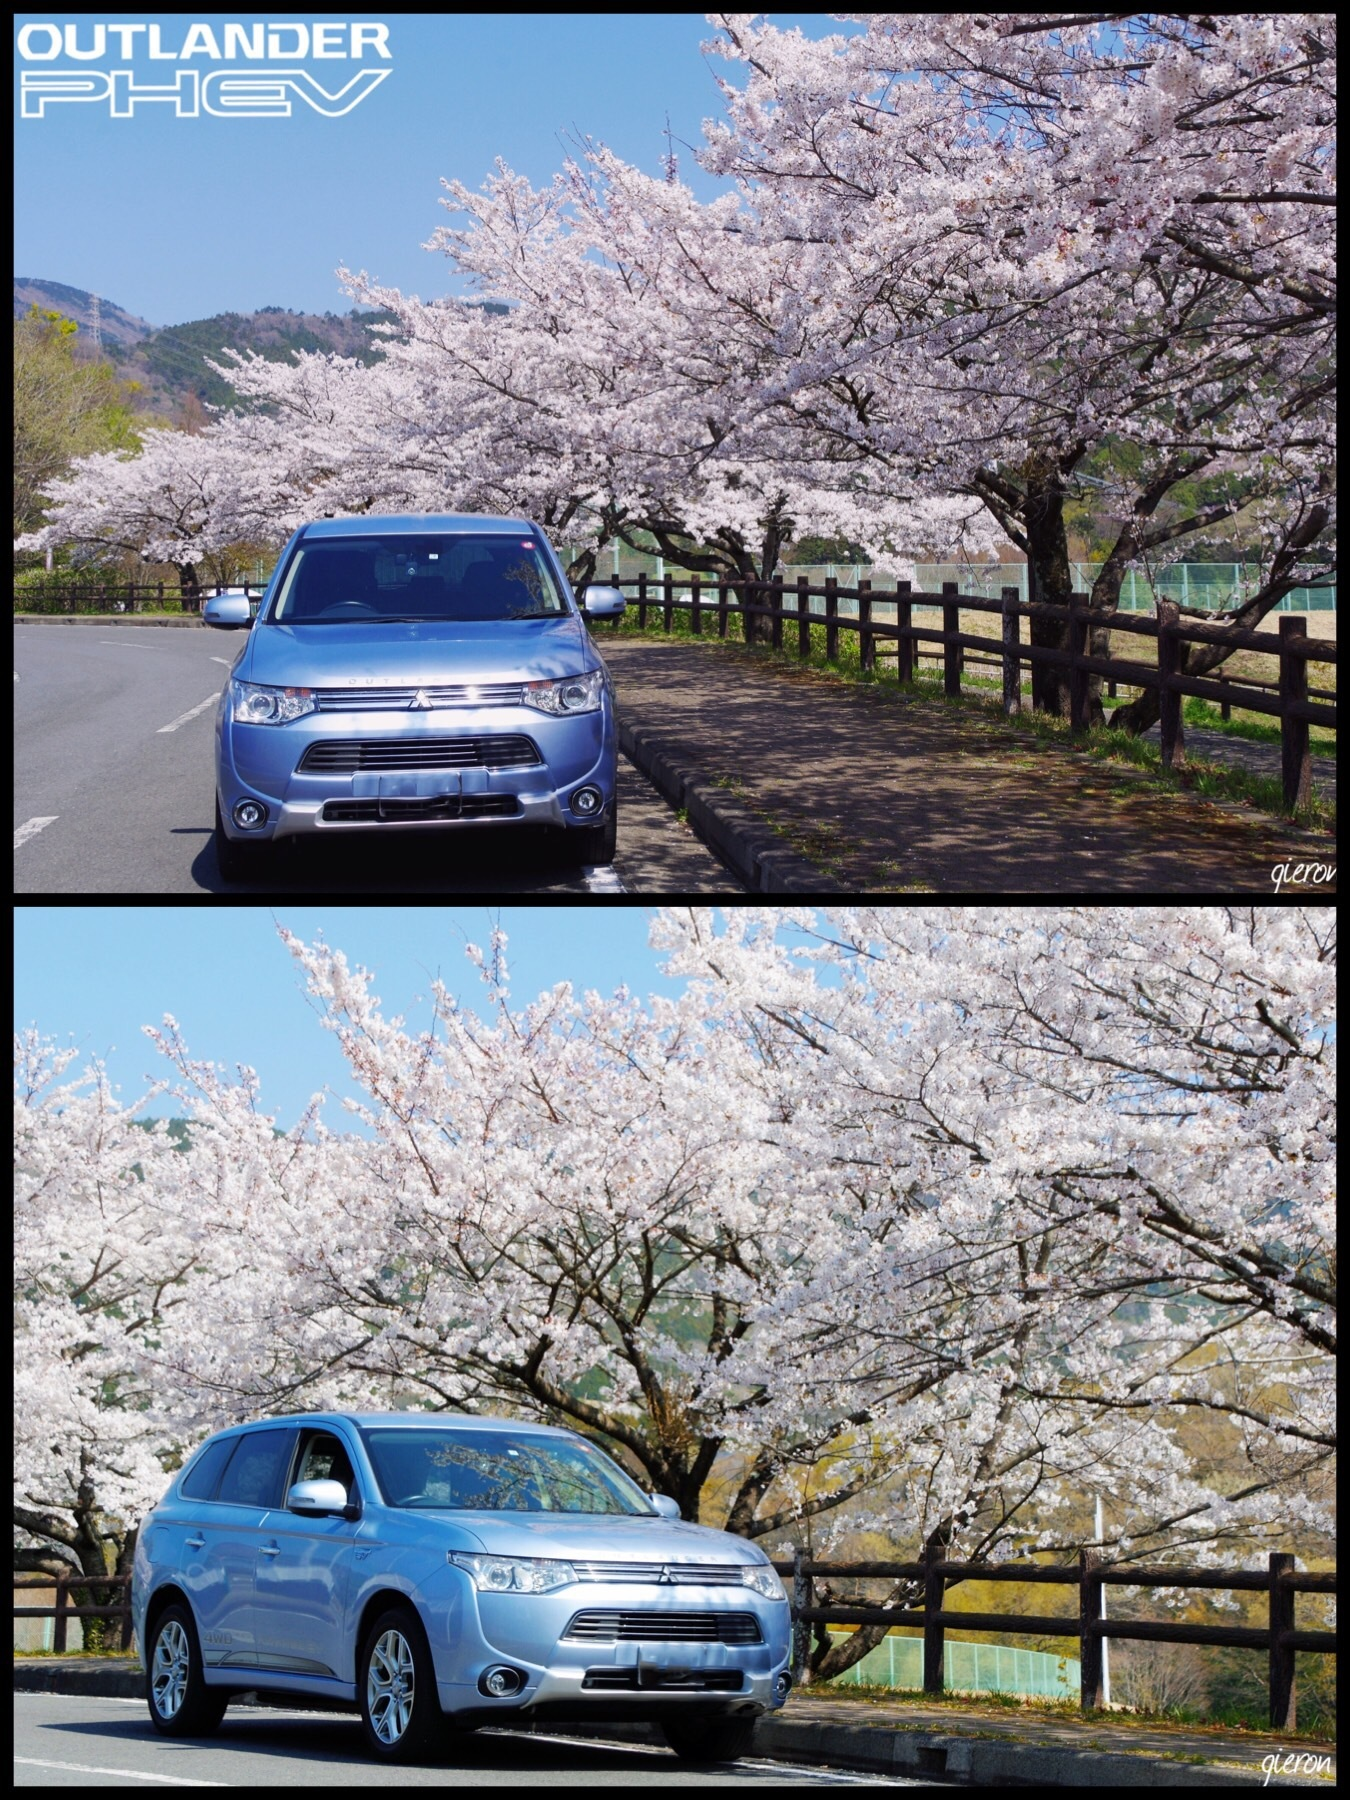 アウトランダーphev Mitsubishi Outlander PHEV with cherry blossom